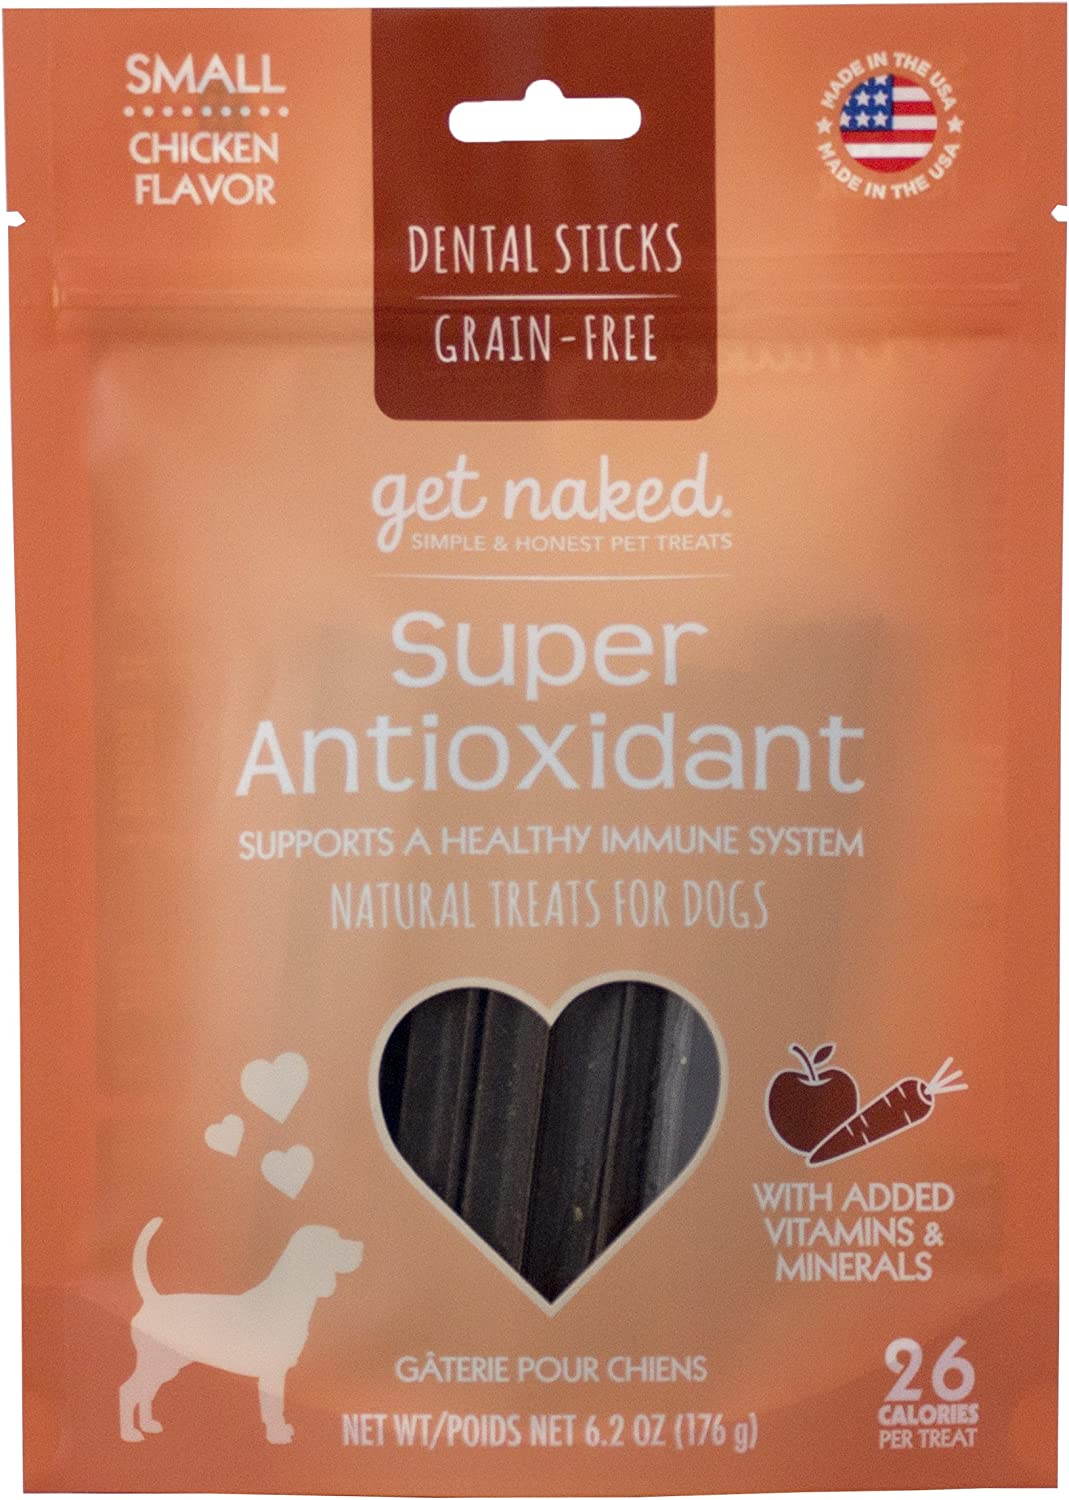 Get Naked Grain Free 1 Pouch 6.2 Oz Super Antioxidant Dental Chew Sticks, Small